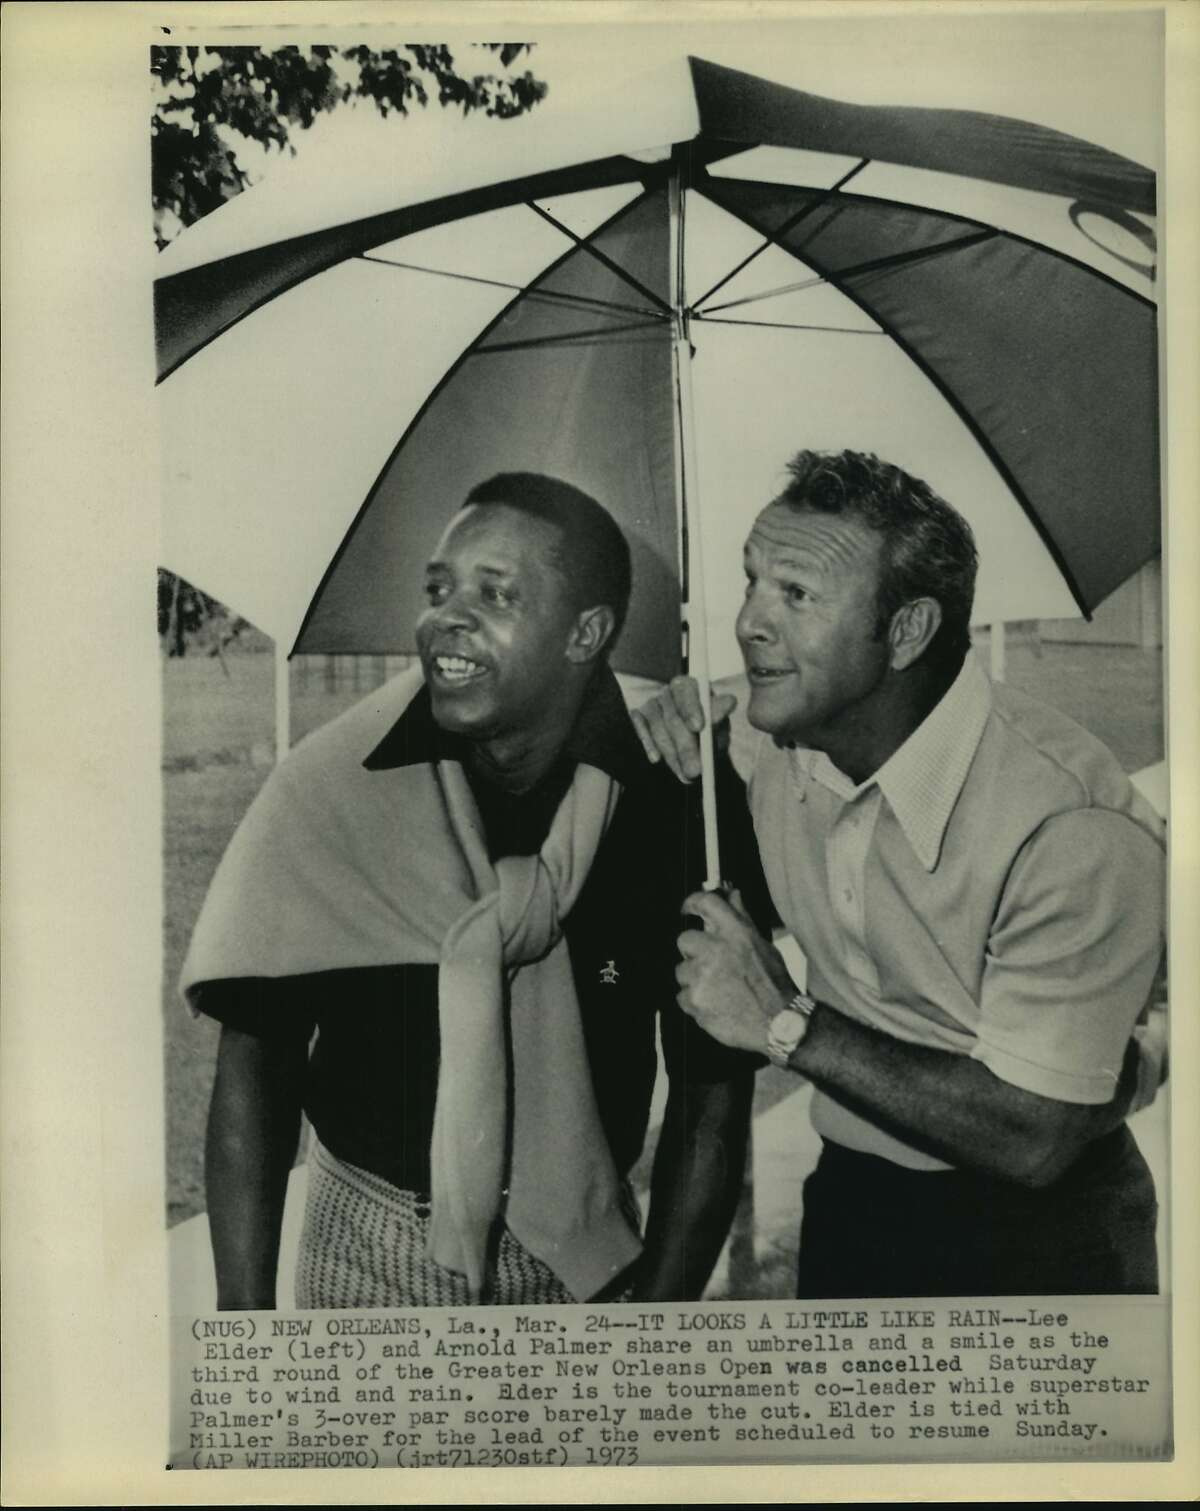 Lee Elder (left) and Arnold Palmer share an umbrella and a smile as the third round of the Greater New Orleans Open was canceled Saturday due to wind and rain.